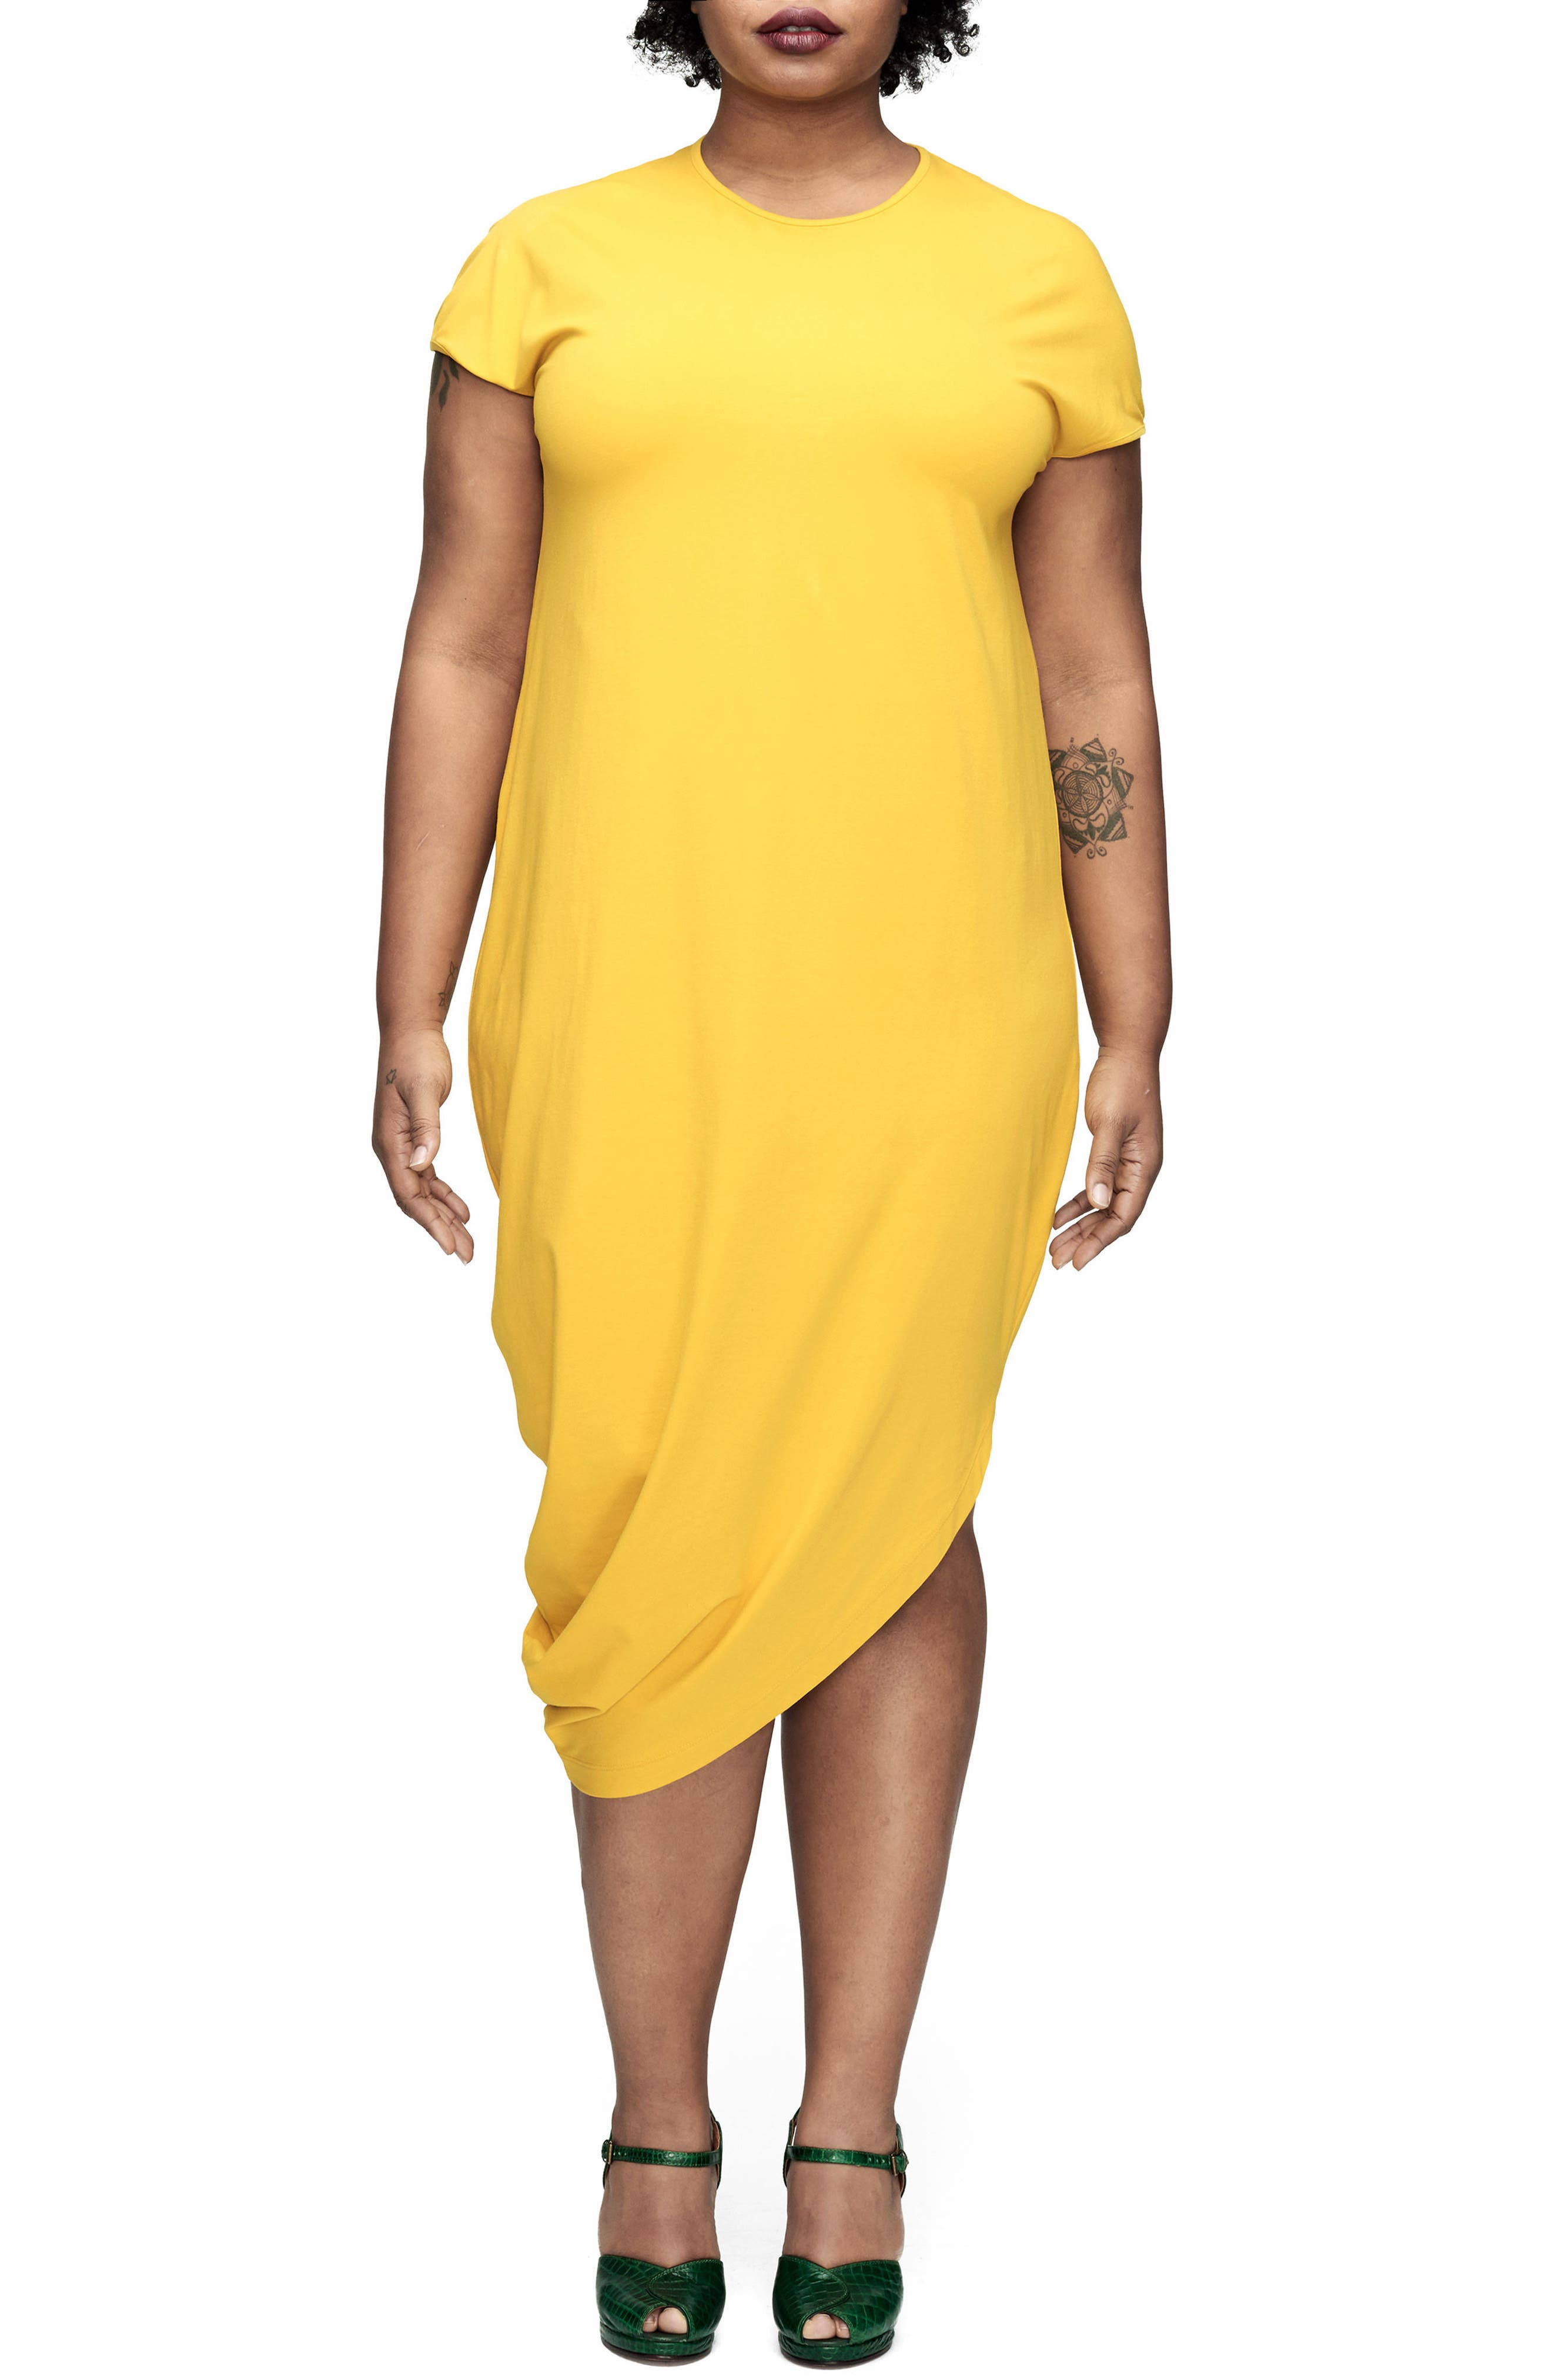 UNIVERSAL STANDARD Geneva Dress (Plus Size)